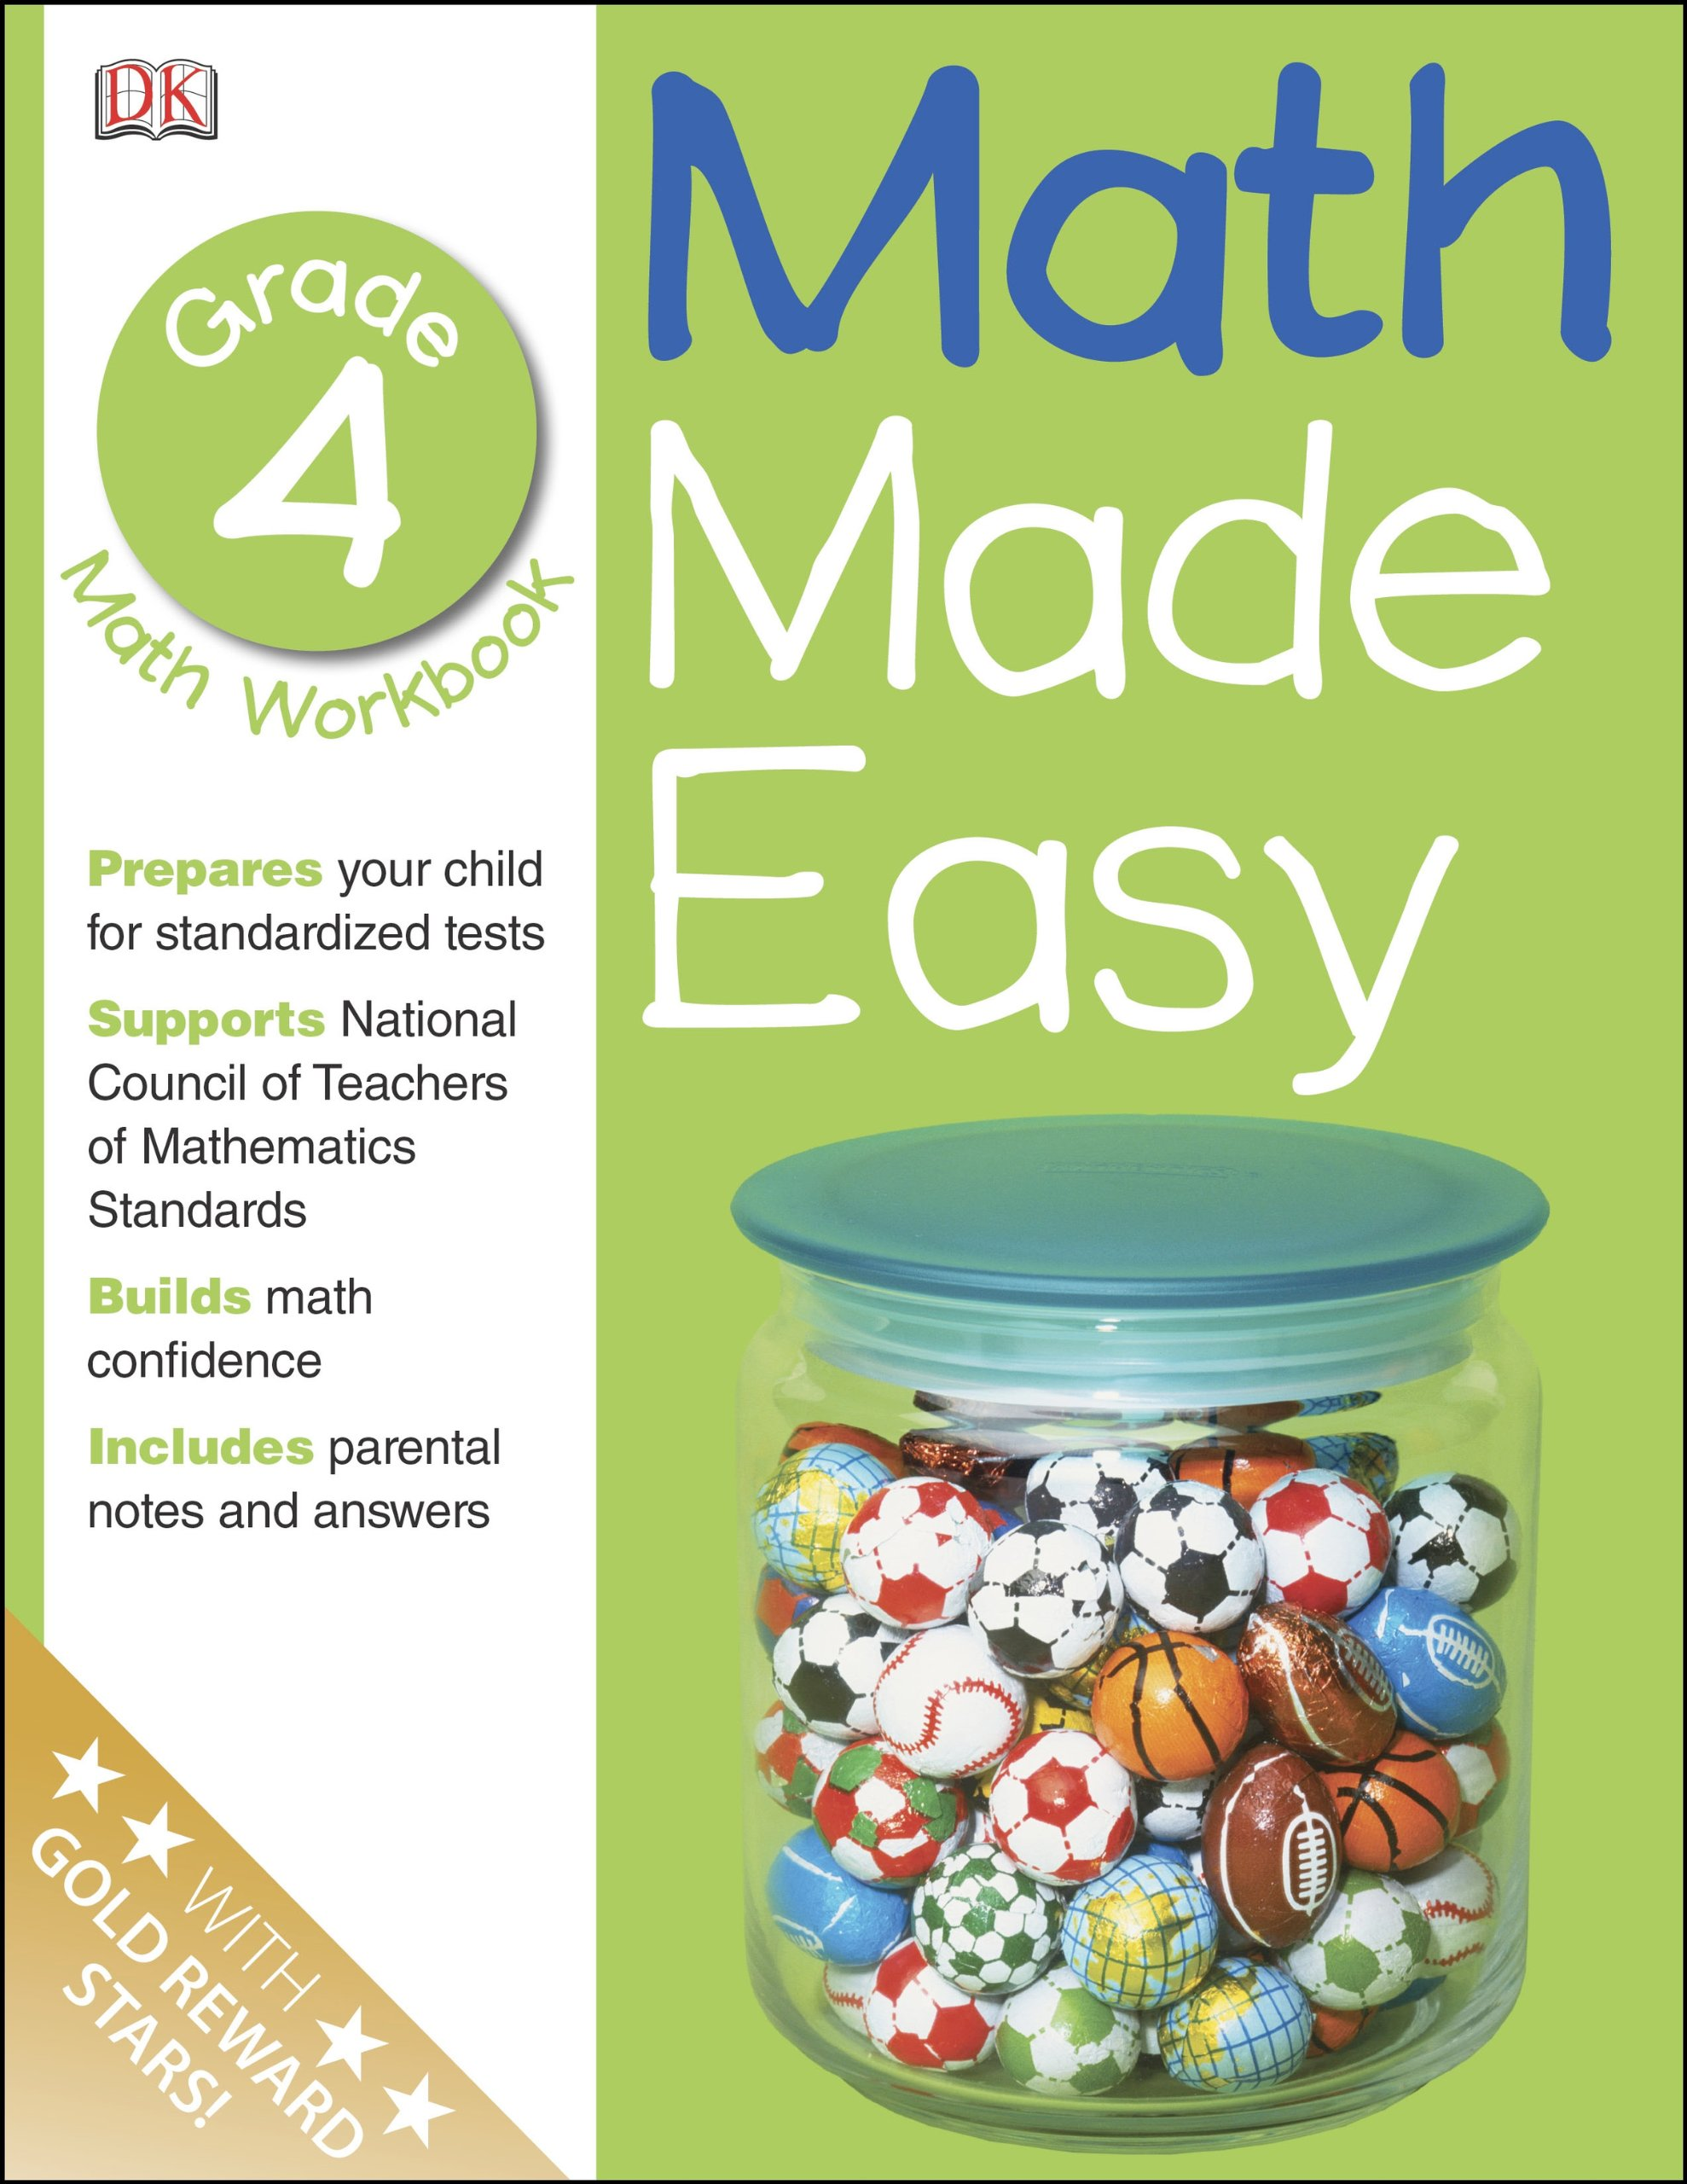 Worksheet 4th Grade Math Workbook math made easy fourth grade workbook dk 9780789457356 amazon com books